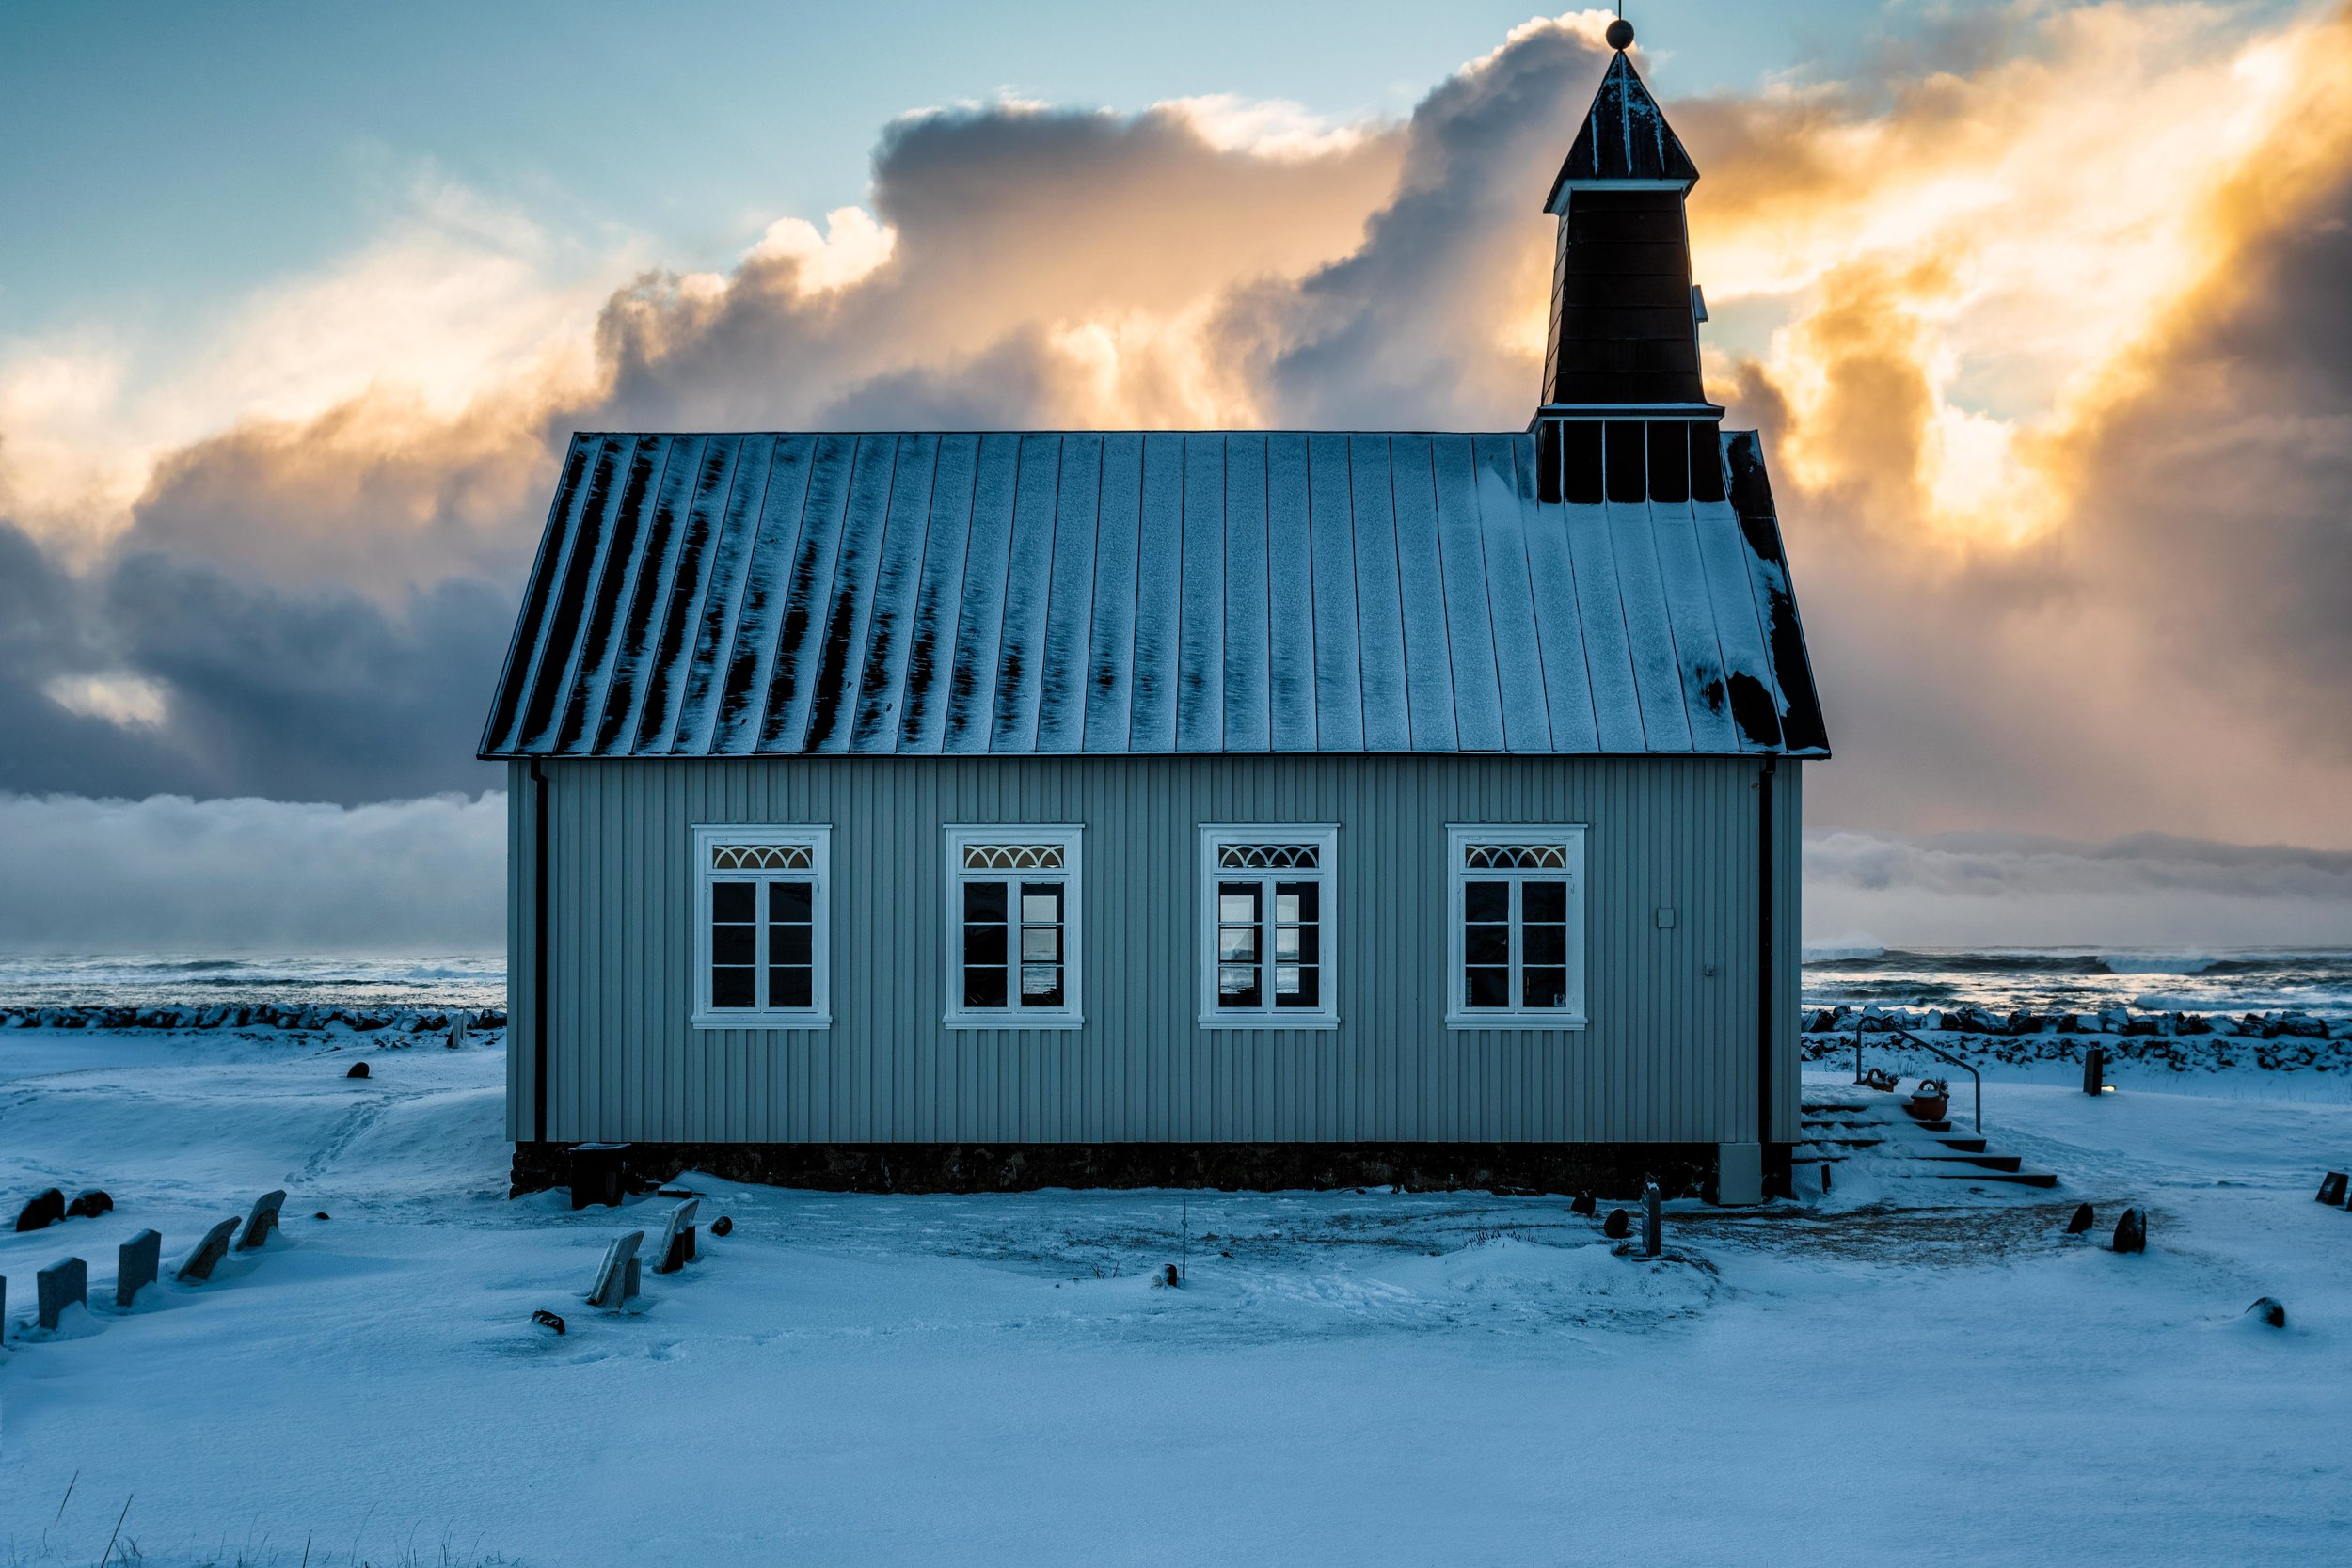 Iceland. snow. travel. adventure. photography. trip. epic landscape. snow. cold. freezing. sunrise. nothern lights. insagram church.jpg